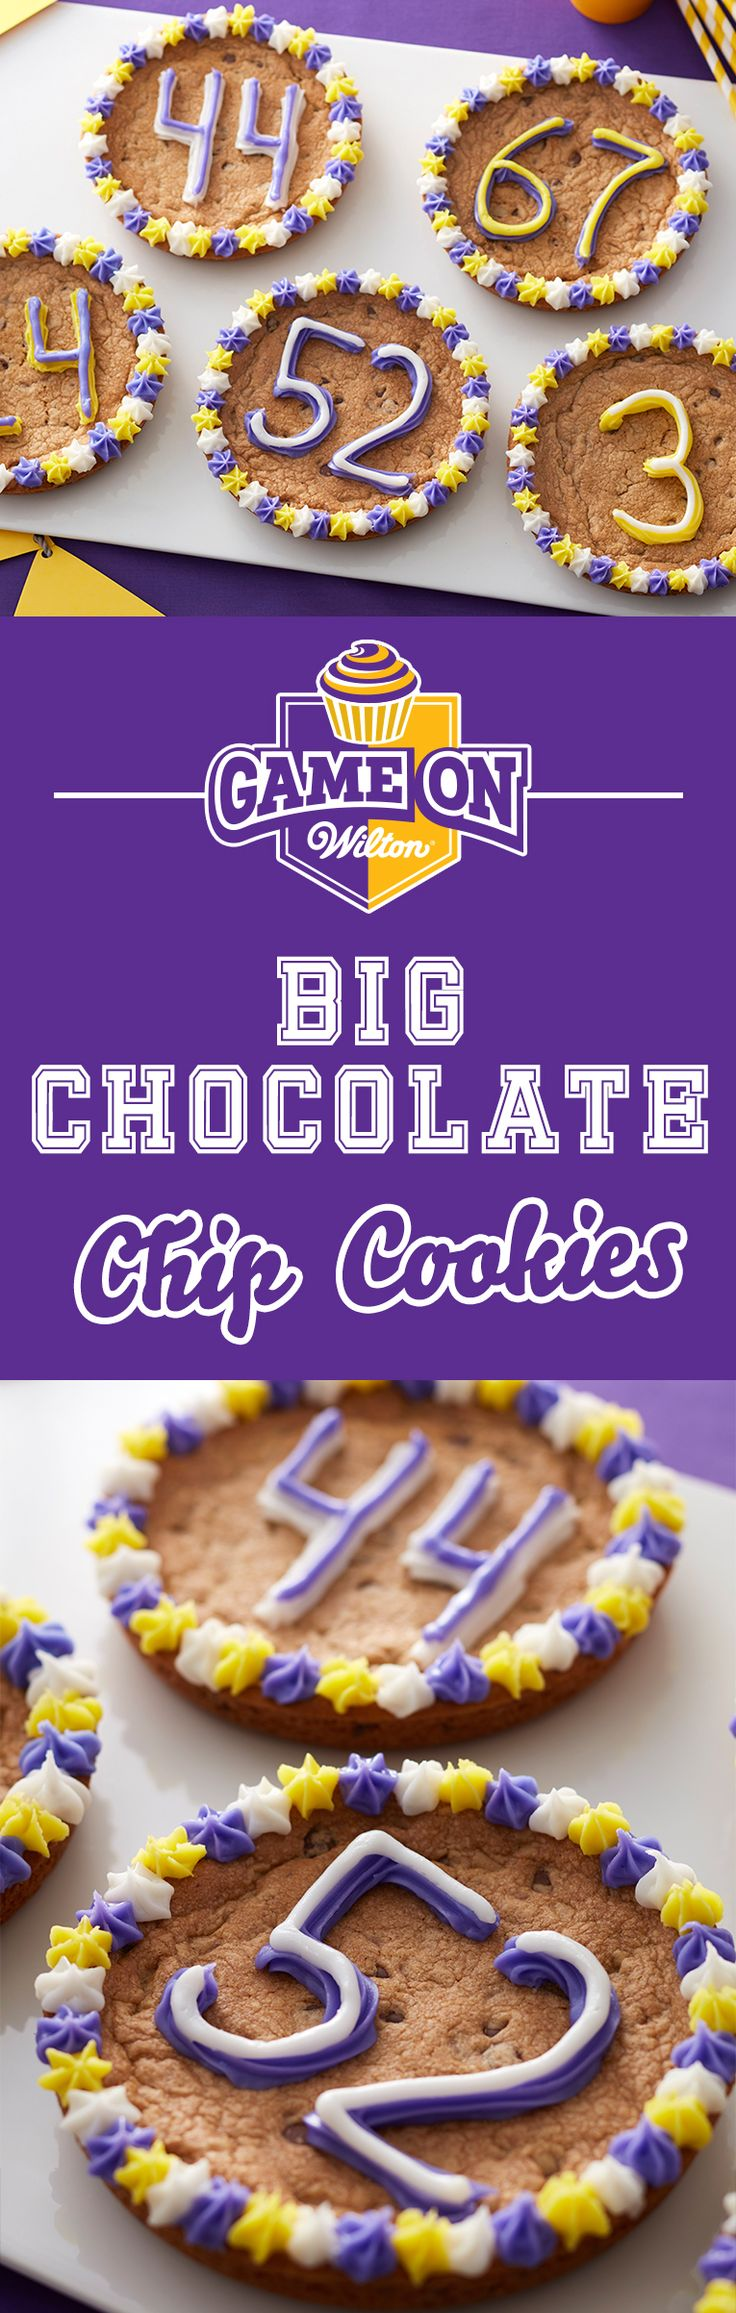 You love your team and these BIG cookies make a BIG statement to show it! Learn to make these cookies in just a few steps so you can have these tasty treats ready to go for the tailgate, cookout, youth sports team or any occasion you want to show off your team pride! Use the Wilton Easy Layers Cake Pan Set to easily make these giant chocolate chip cookies.